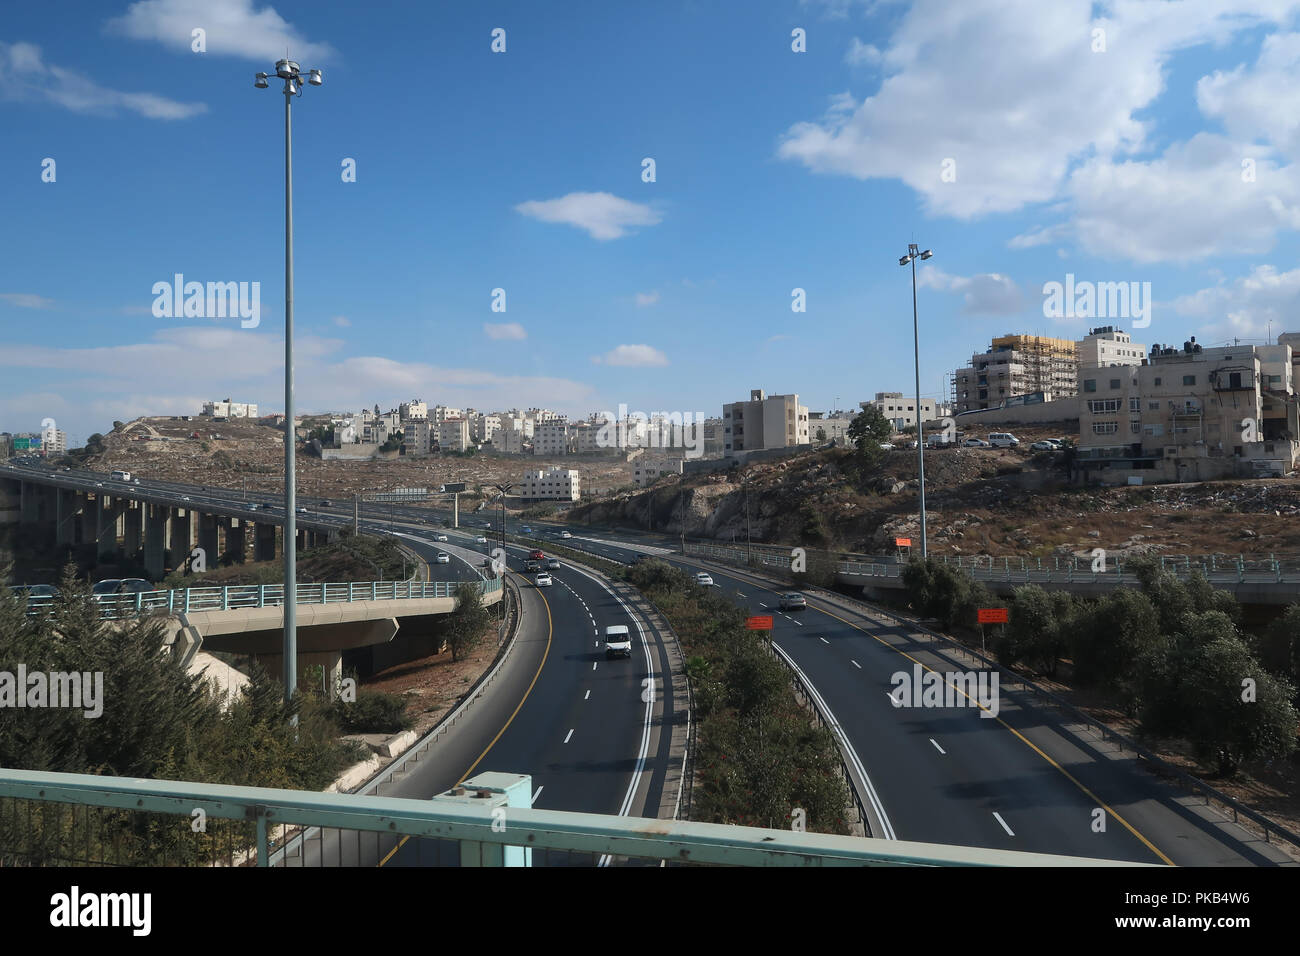 View of residential houses of Beit Hanina a Palestinian